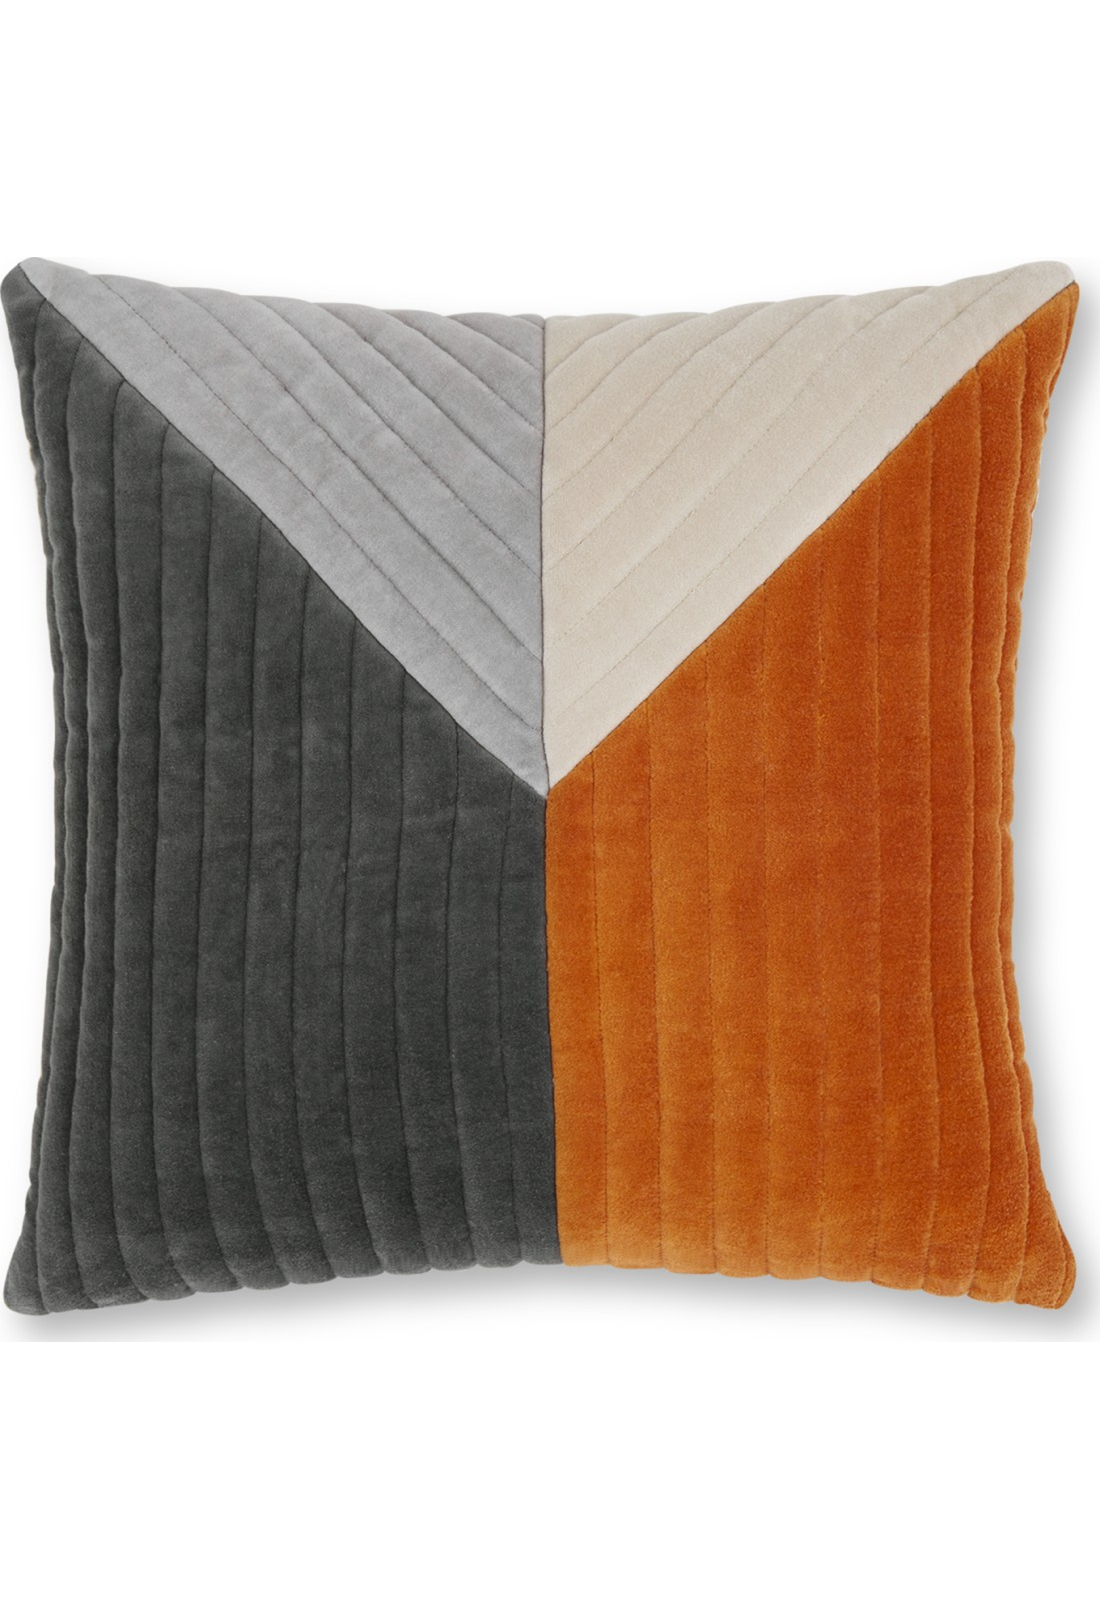 45CM CUSHION COVERS 2 X COTTON VELVET GREY GOLD ORANGE TASSELLED 18/""